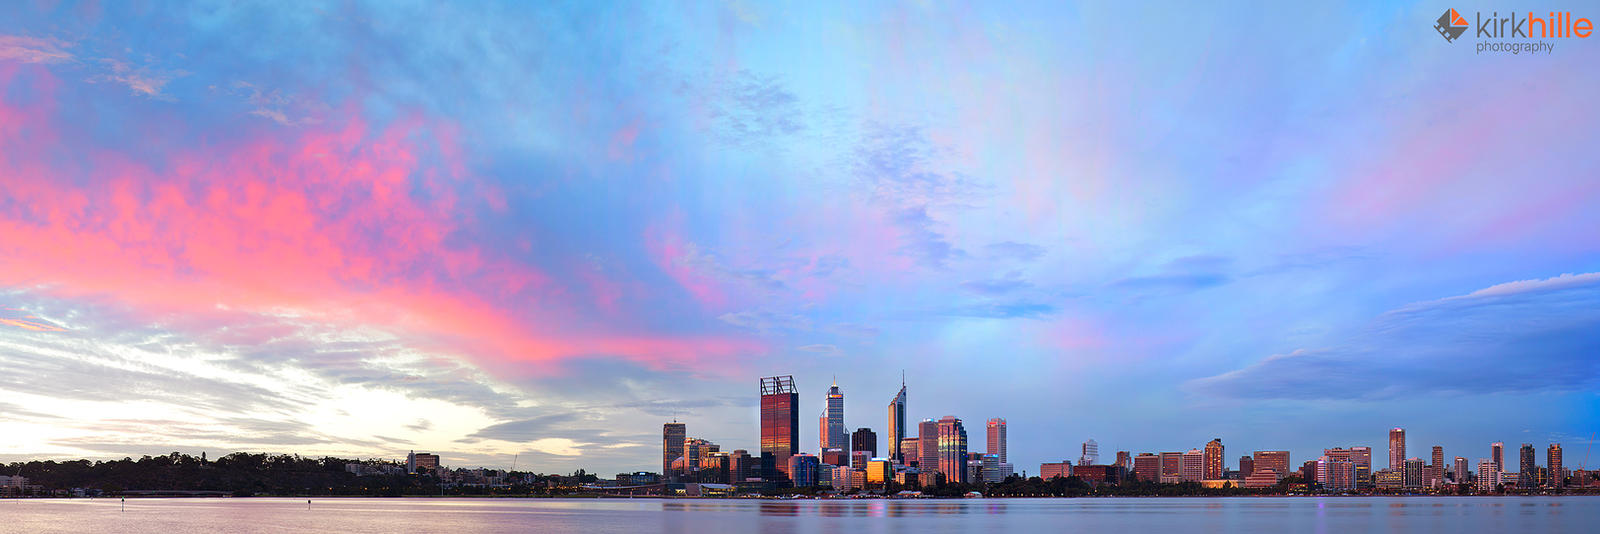 Perth Skyline 2012 by Furiousxr